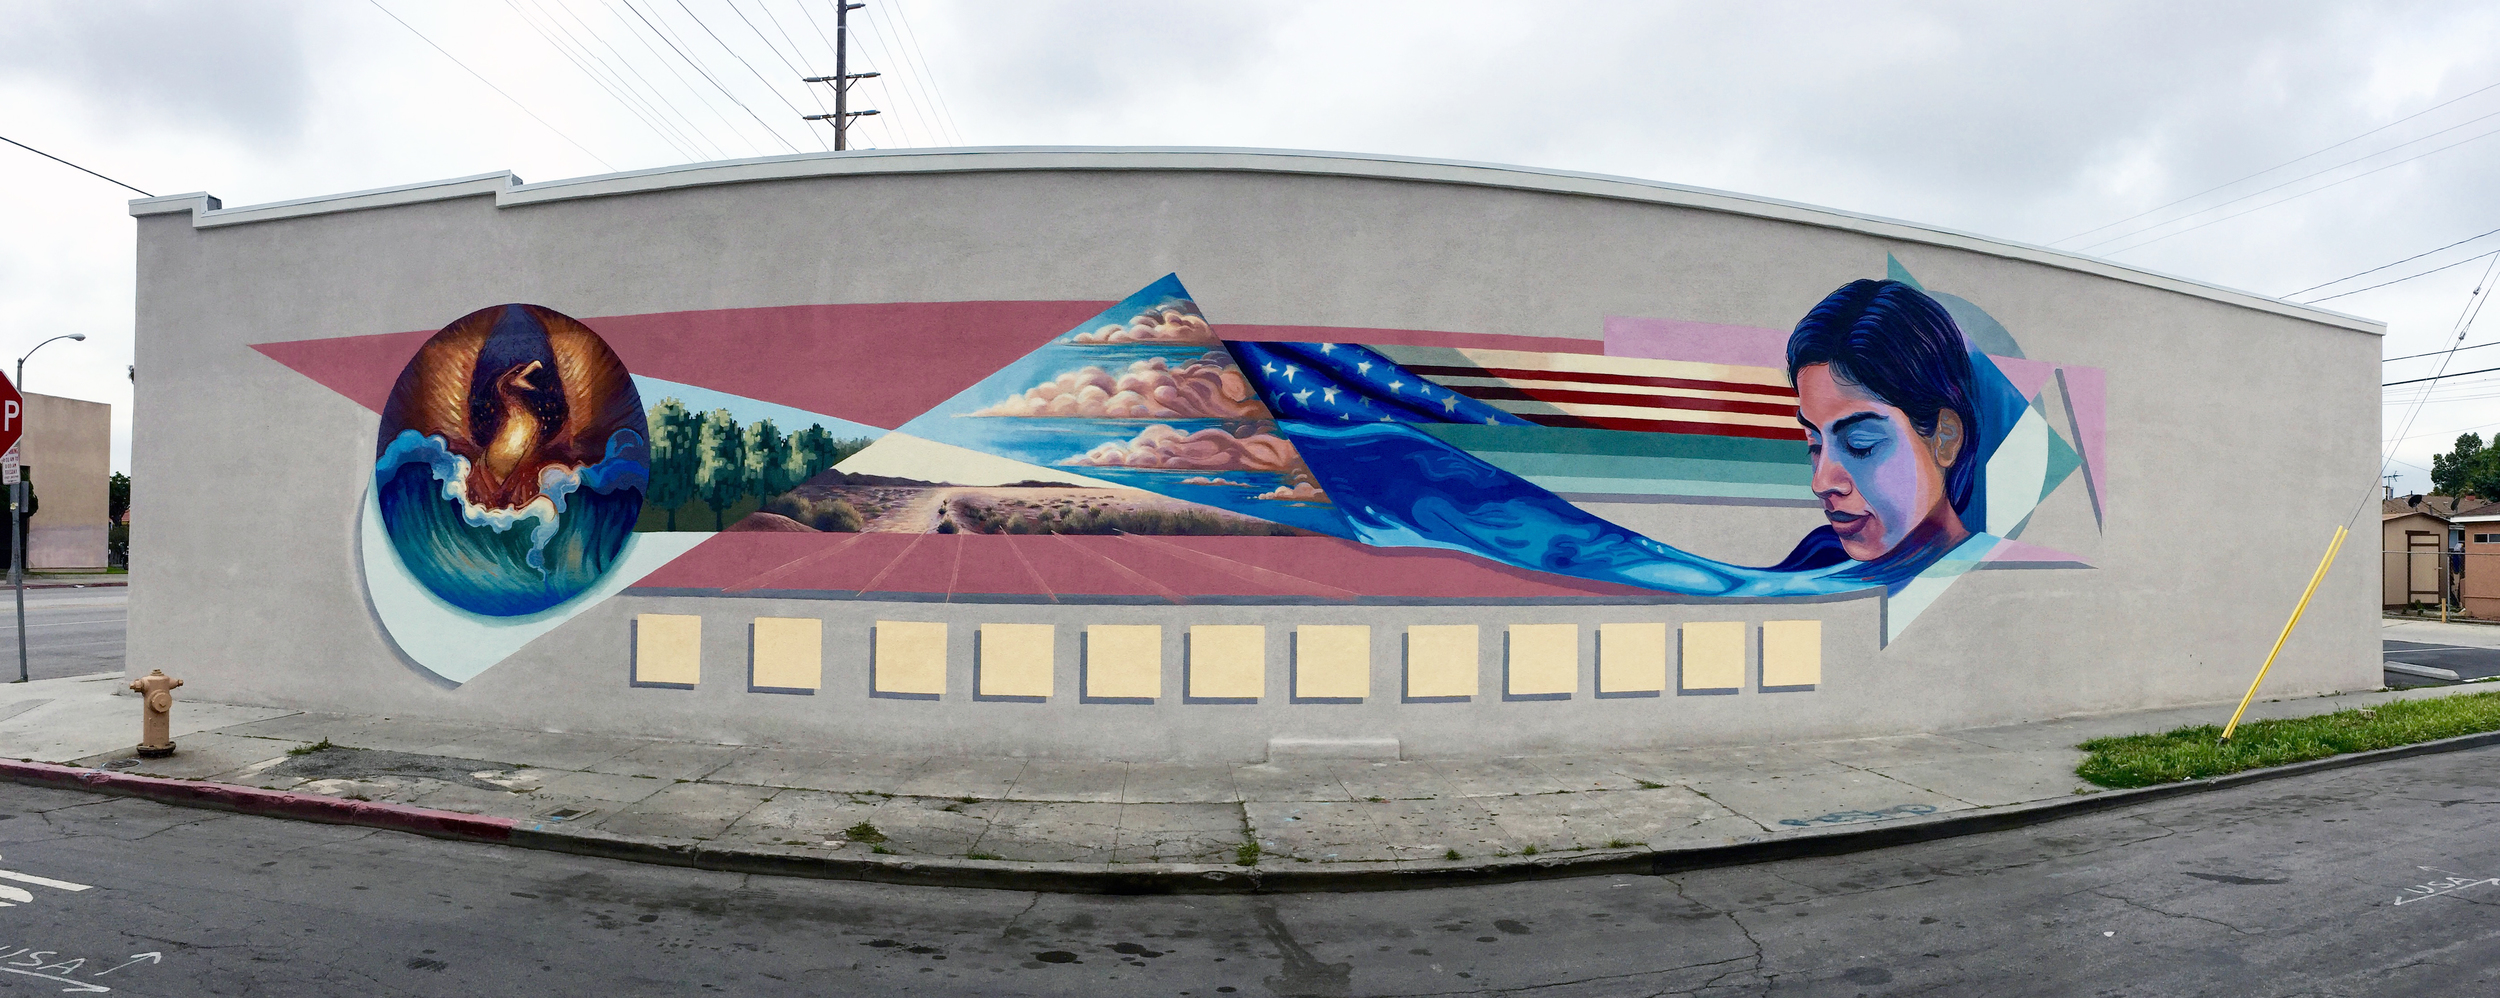 """""""Wanderer, there is no road, the road is made by walking""""  This mural project is sponsored by the City of Long Beach Office of 9th District Councilman Rex Richardson. It is part of the Creative Corridor Mural project series titled Uptown Renaissance. It is painted on the Intercity Fellowship Hall building"""